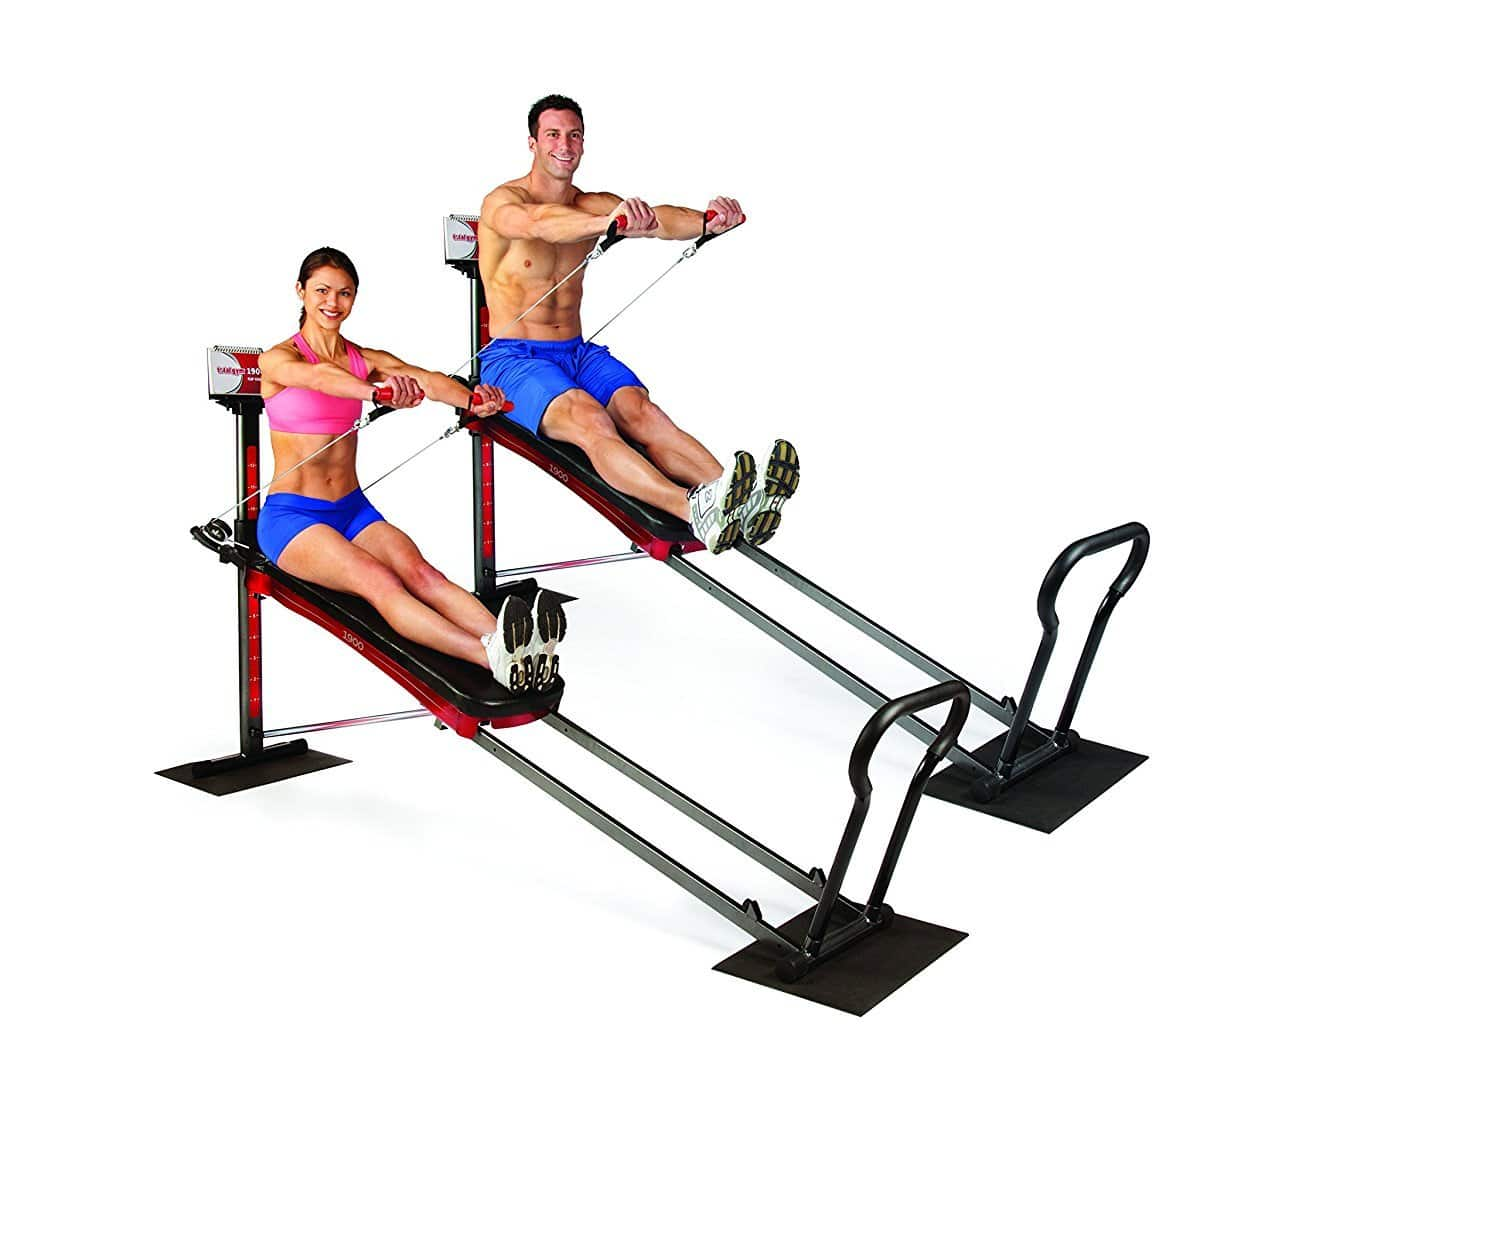 Total gym reviews- 7 best RATED machines and their accessories 6